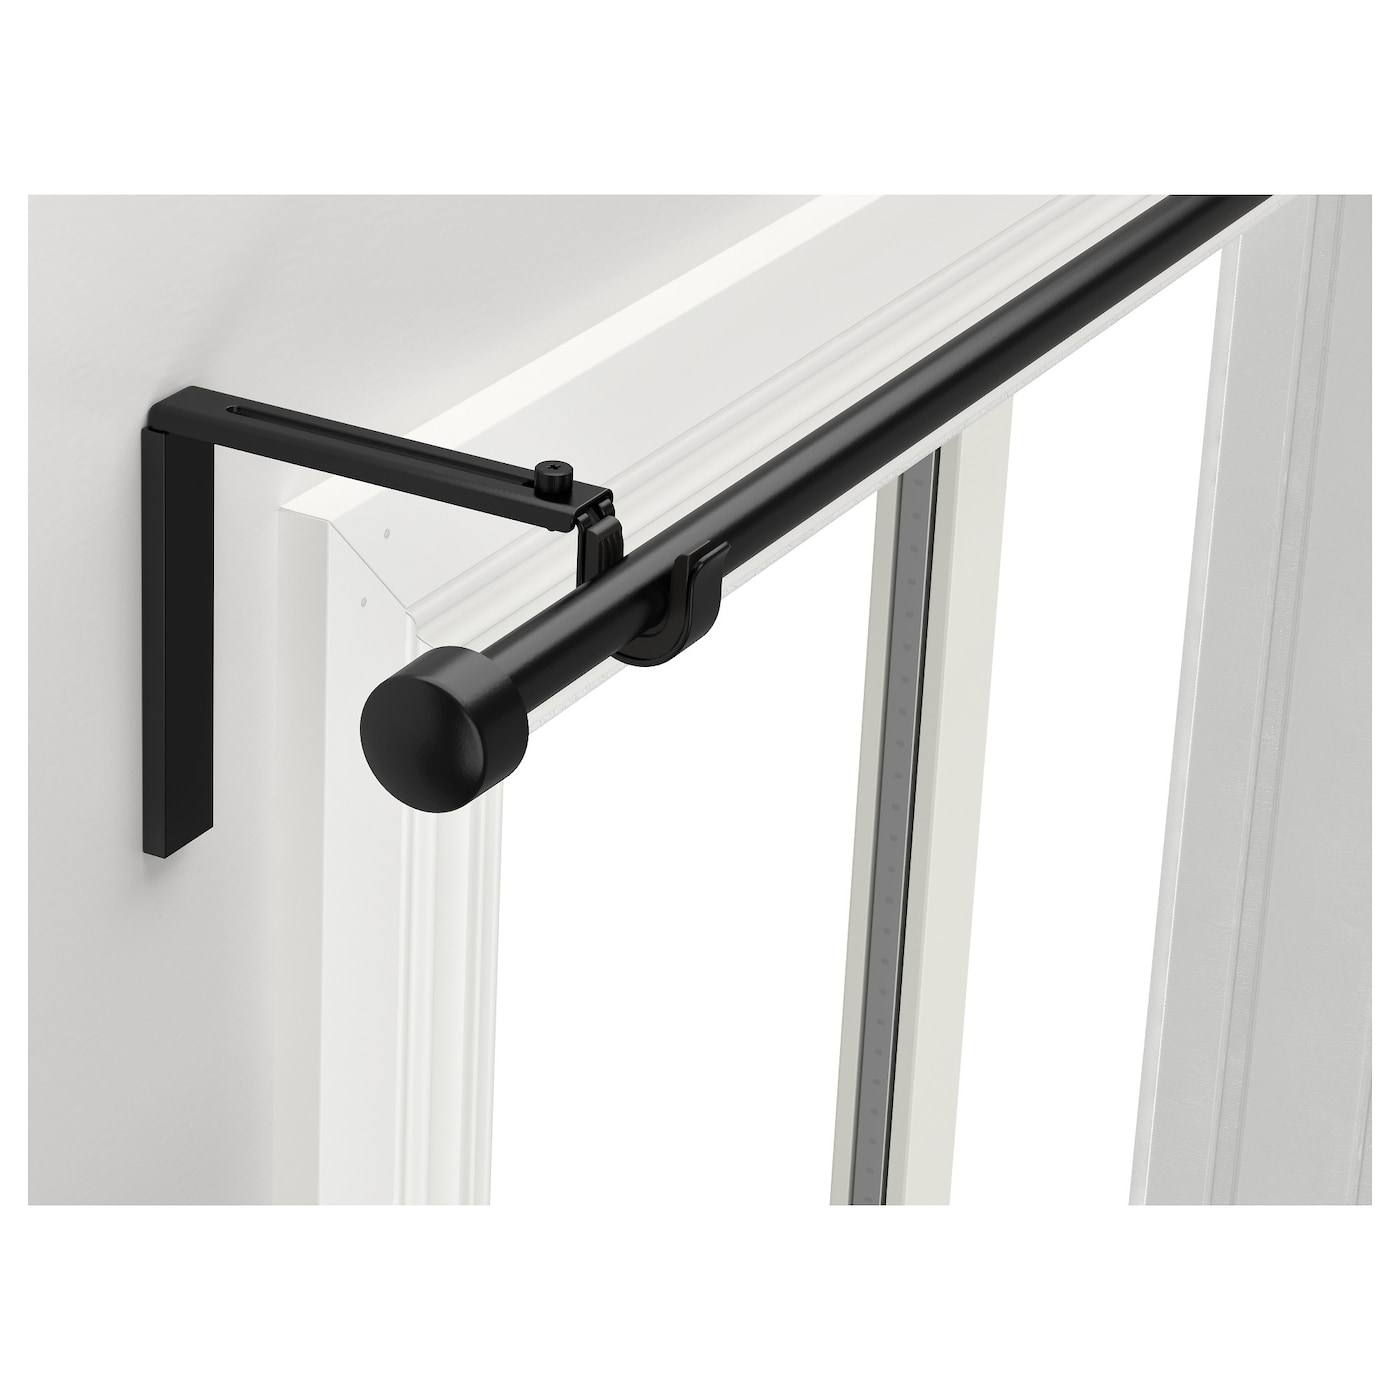 r cka curtain rod combination black 120 210 cm ikea. Black Bedroom Furniture Sets. Home Design Ideas